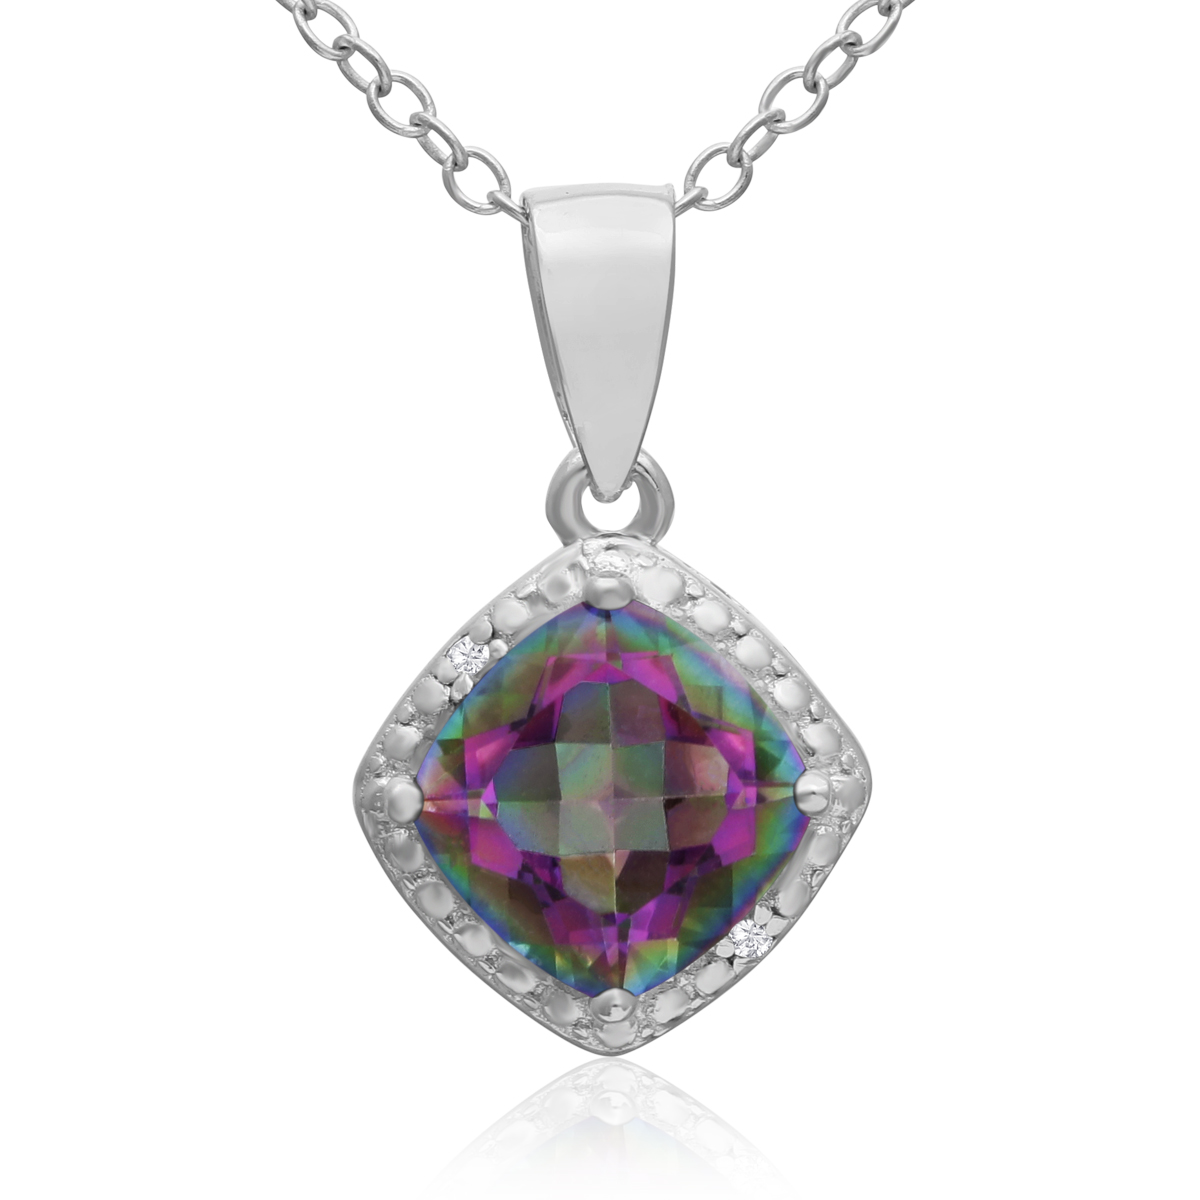 1 1 2ct Mystic Topaz and Diamond Pendant